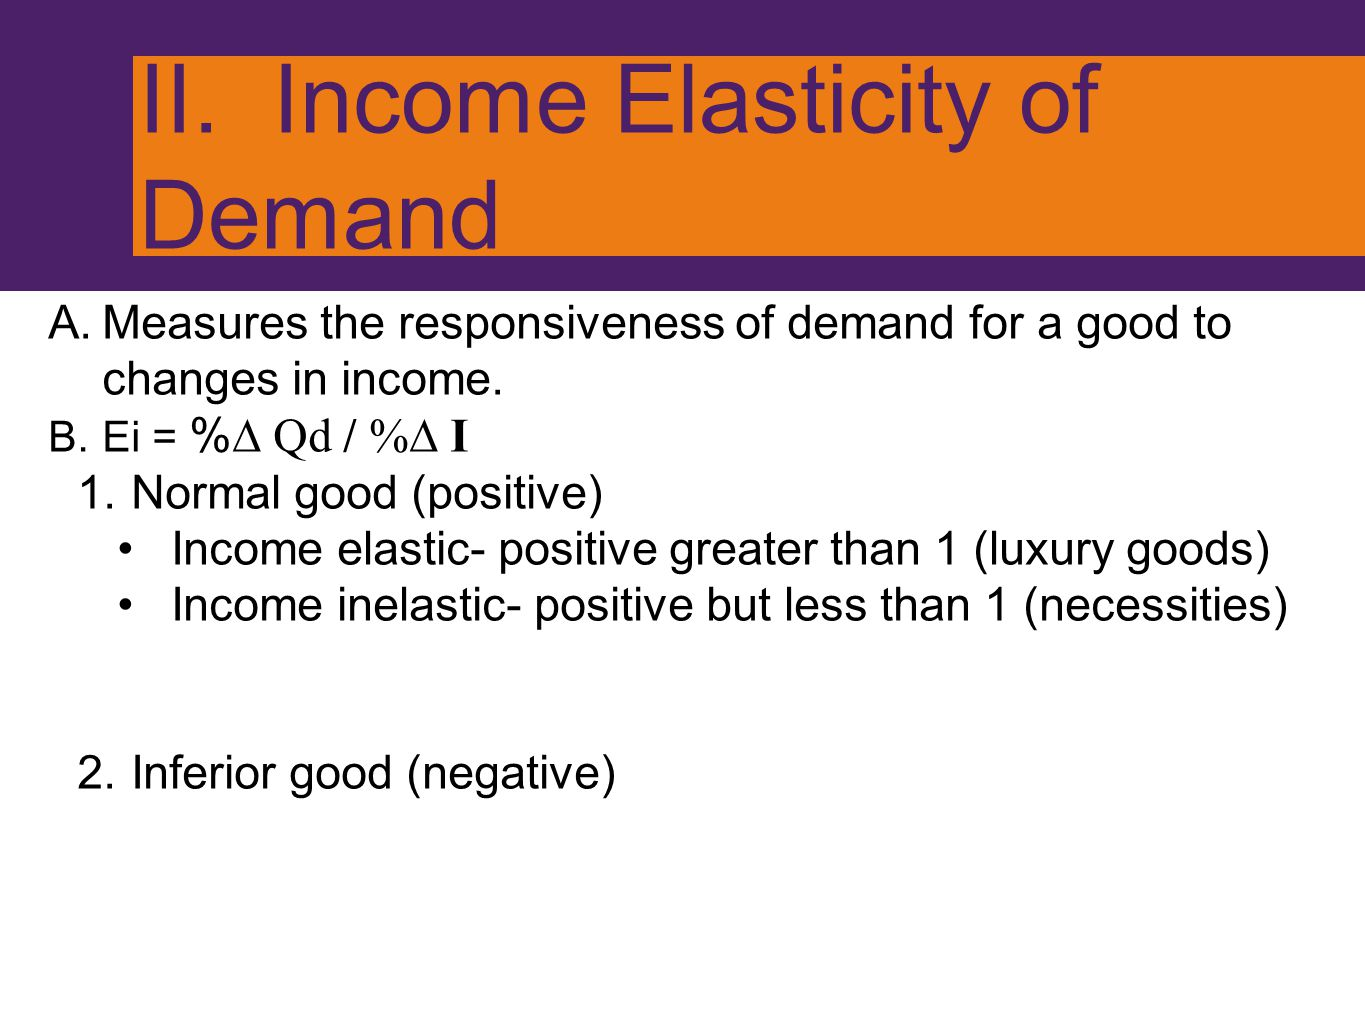 II. Income Elasticity of Demand